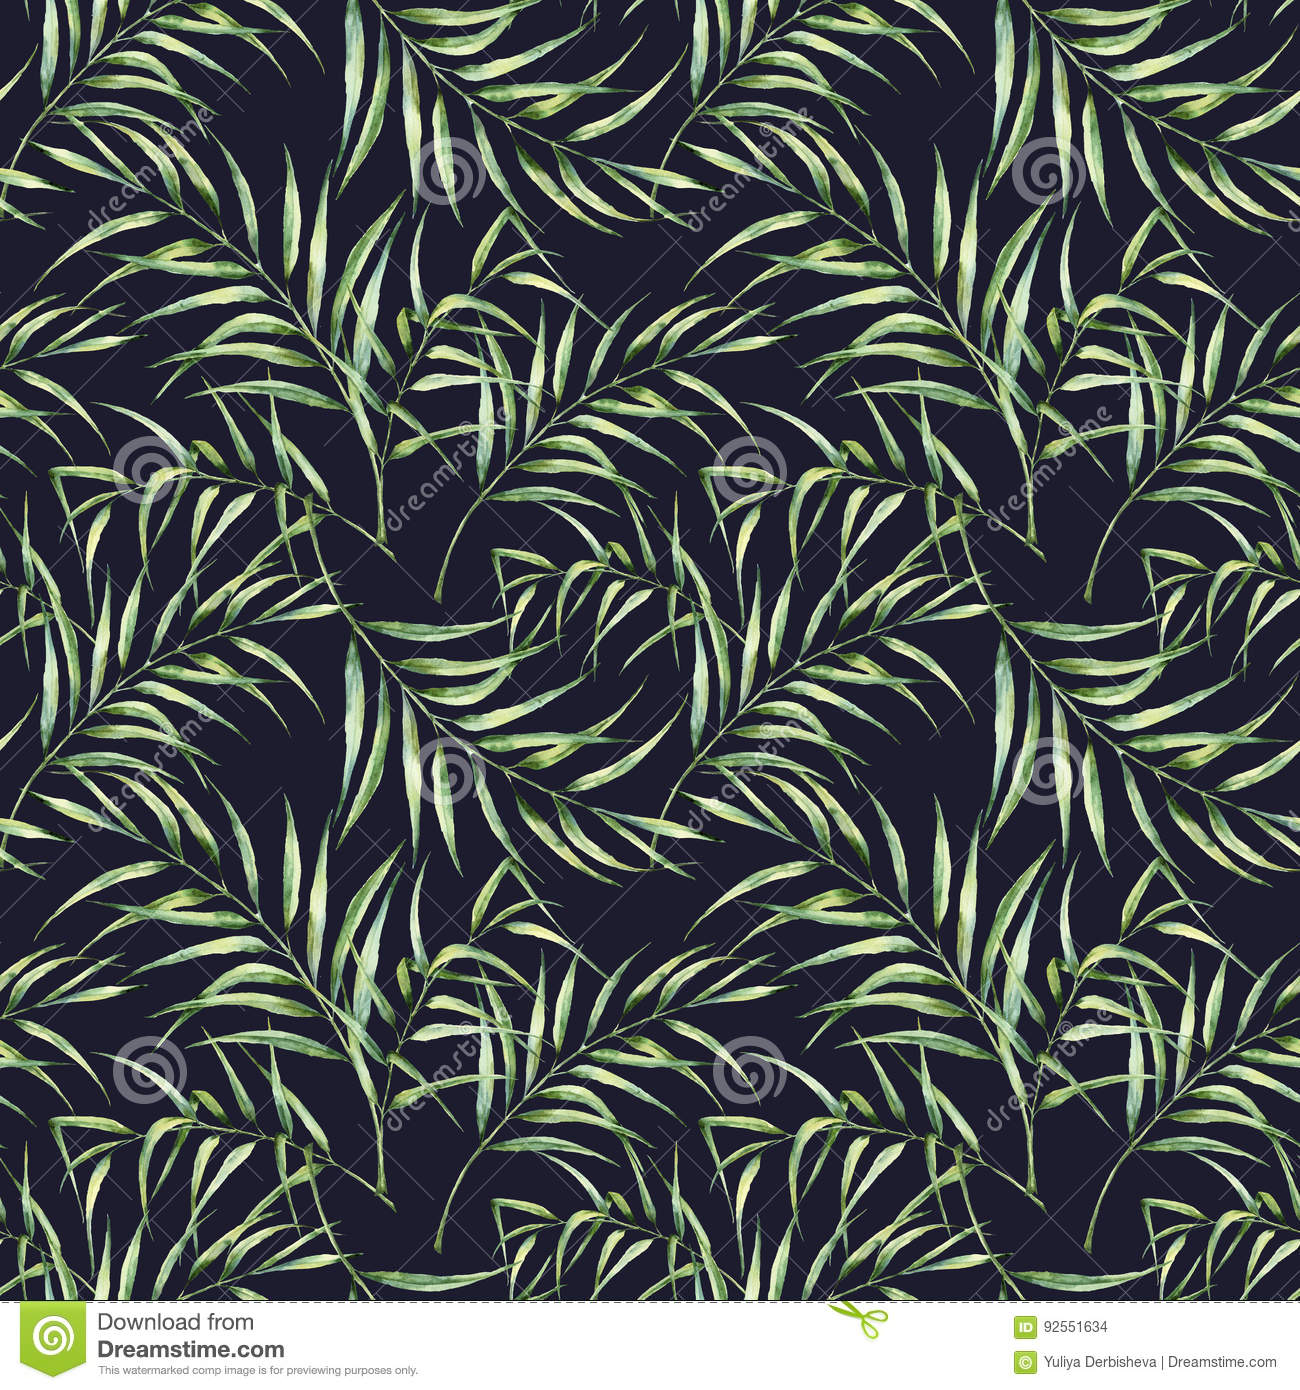 Watercolor pattern with palm tree leaves. Hand painted exotic greenery branch isolated on dark blue background